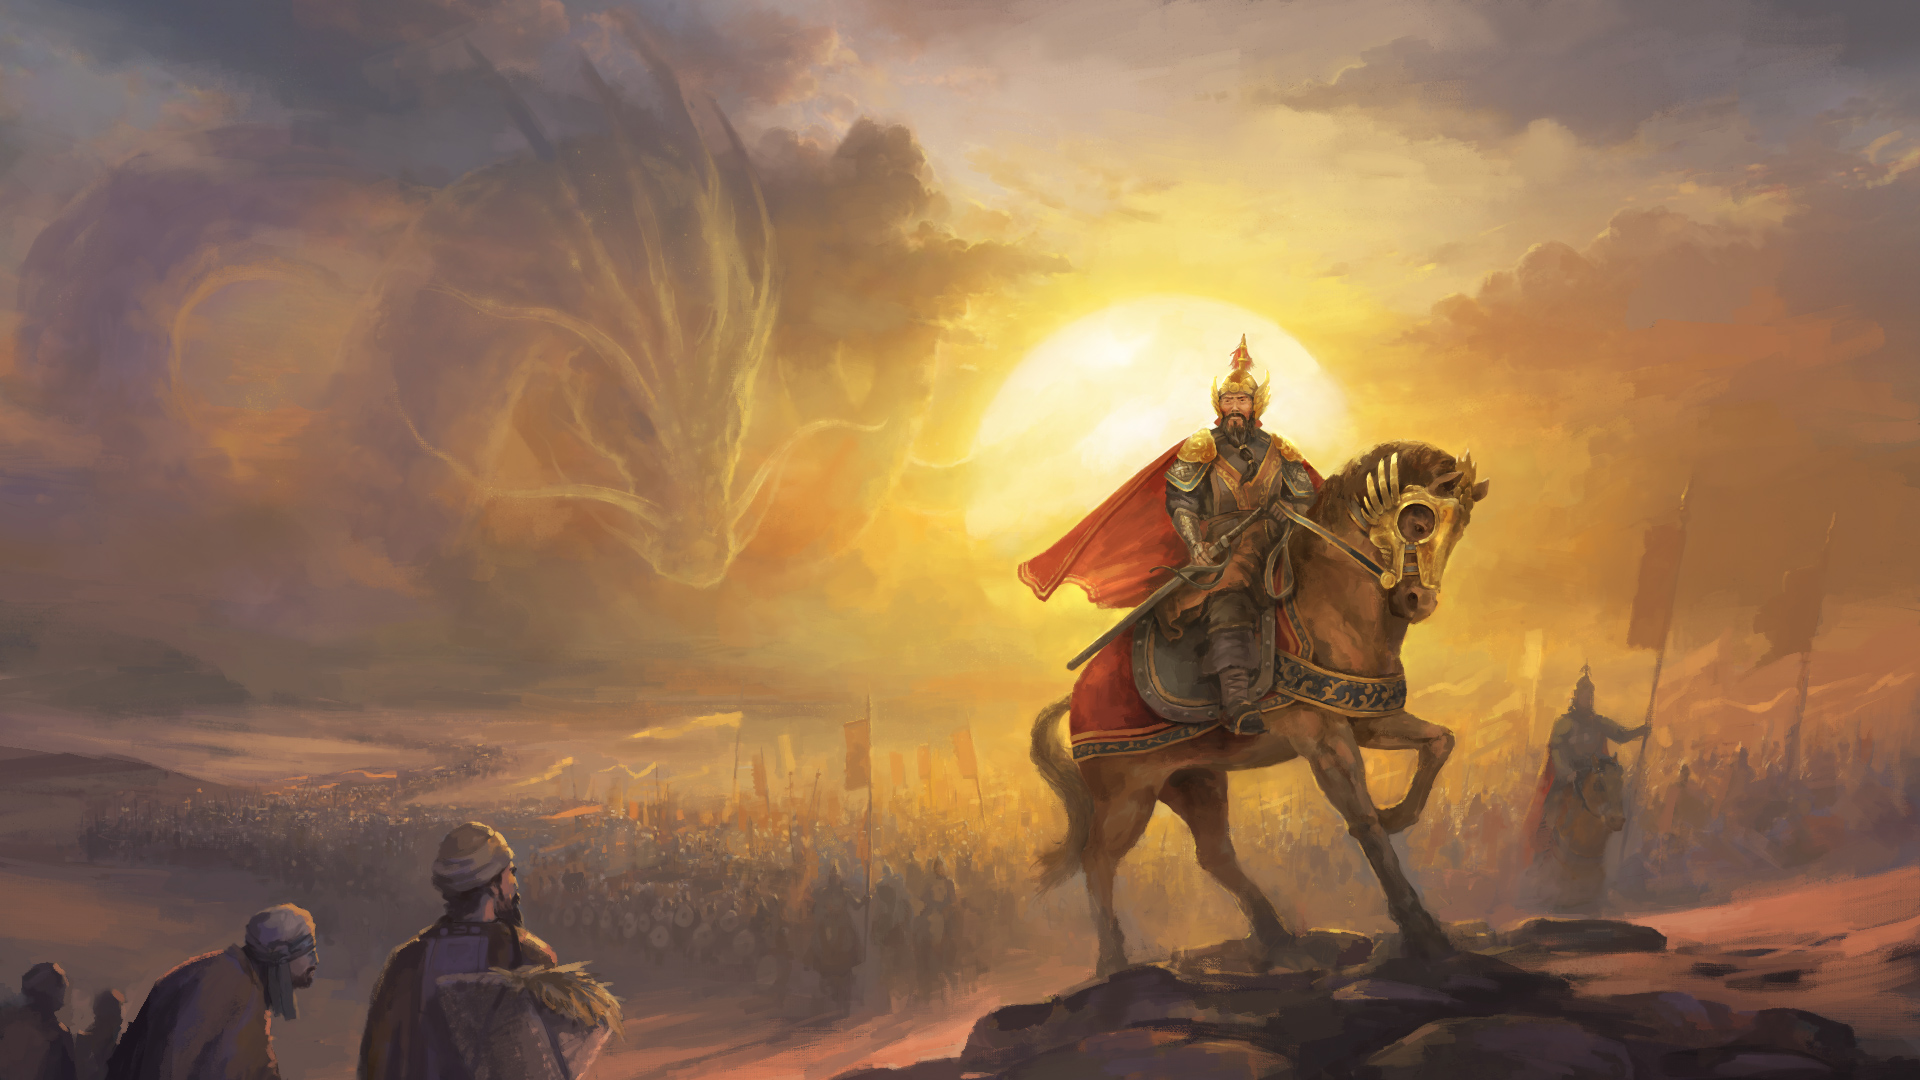 Feel the power of China in the new Crusader Kings II expansion screenshot